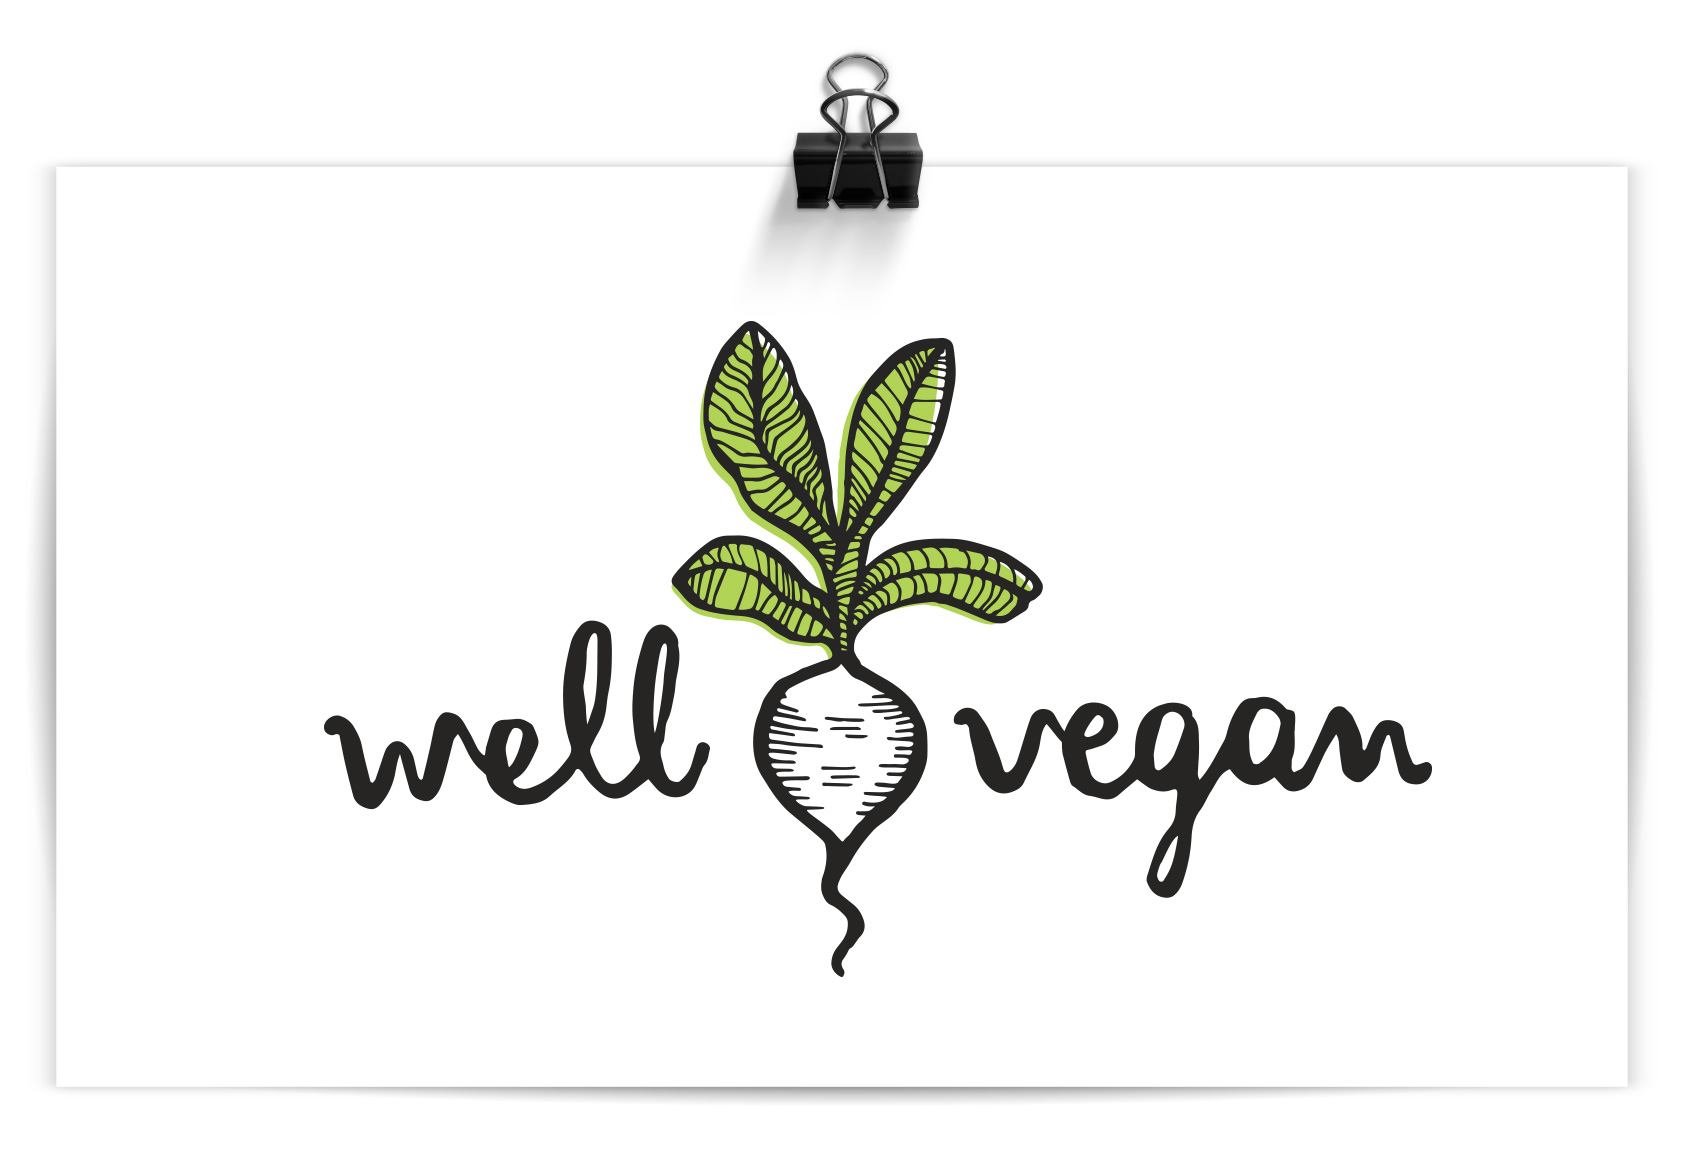 well vegan hand drawn logo in black brush pen with a radish illustration and green color pop